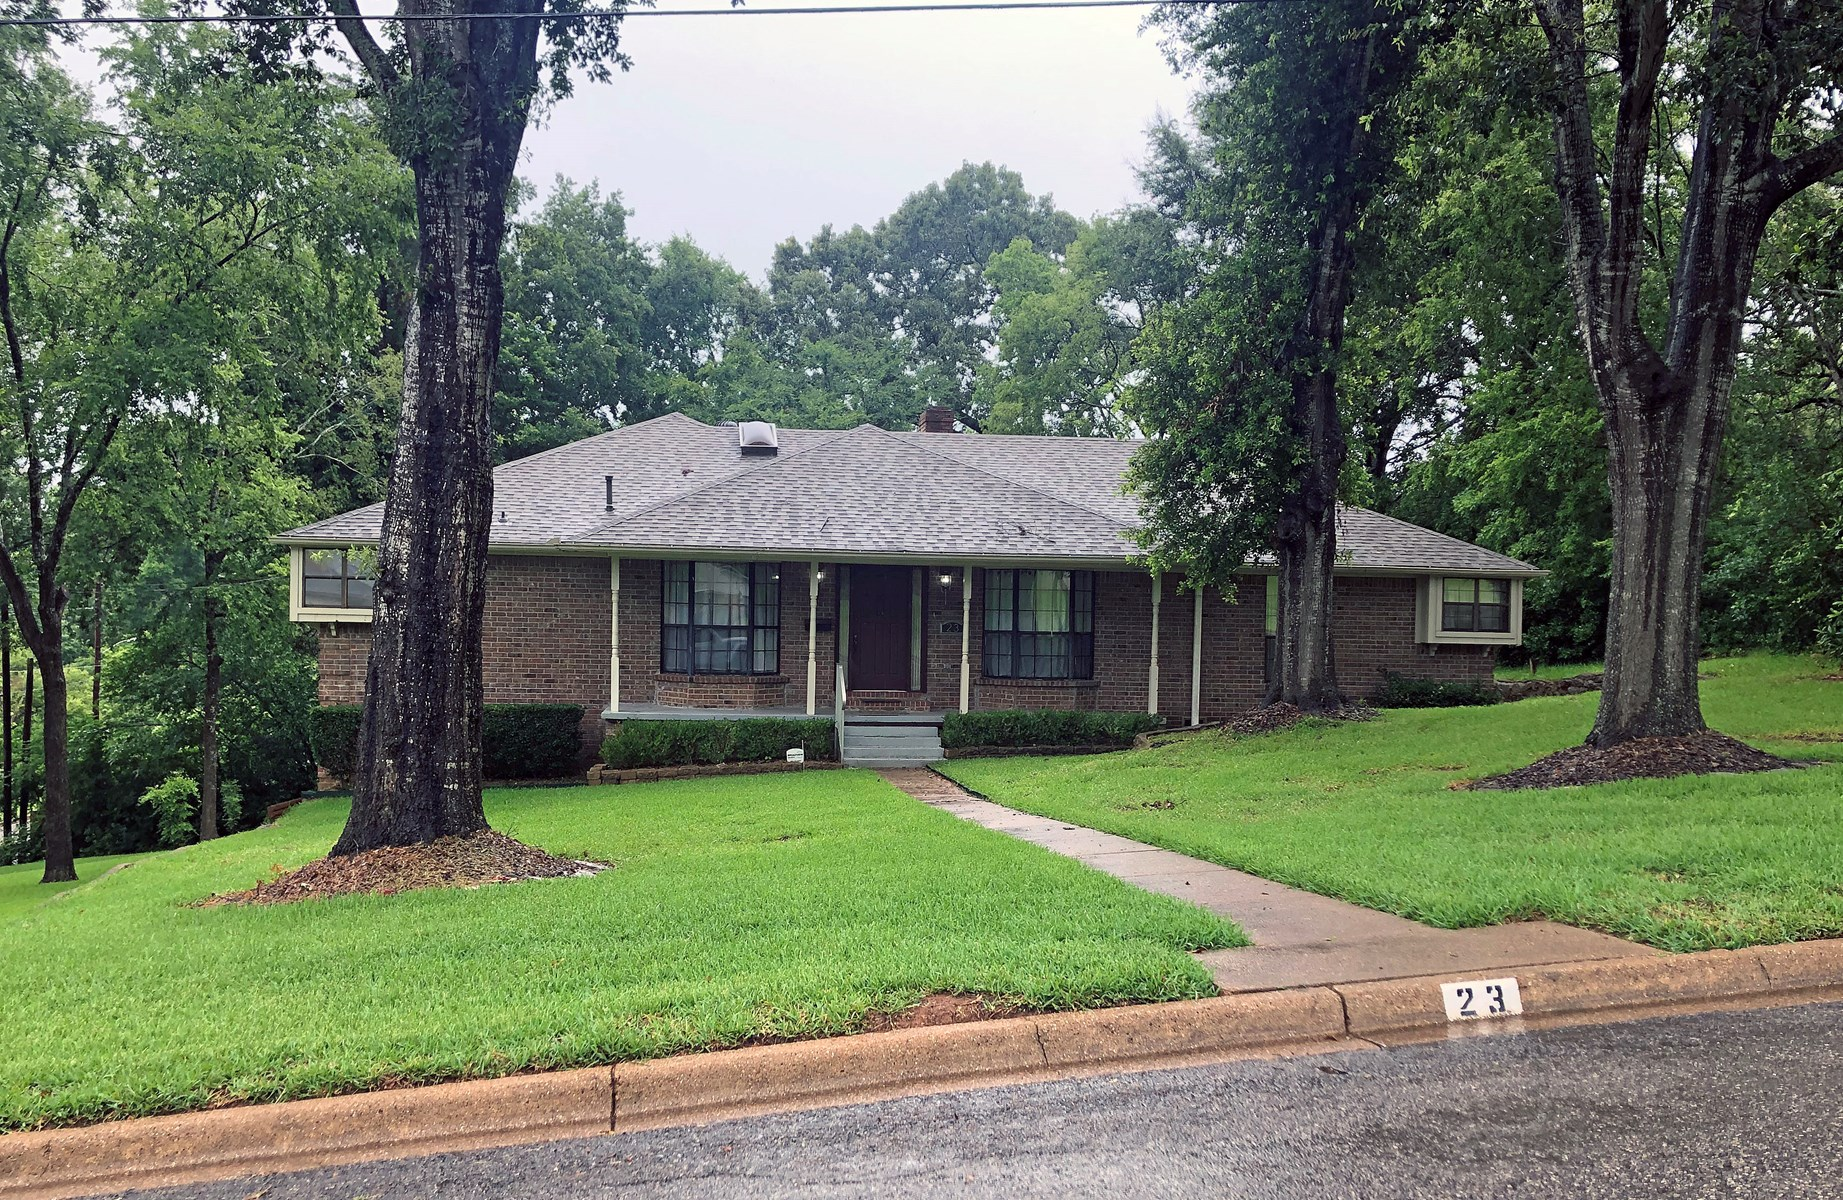 HOME FOR SALE IN ANDERSON COUNTY